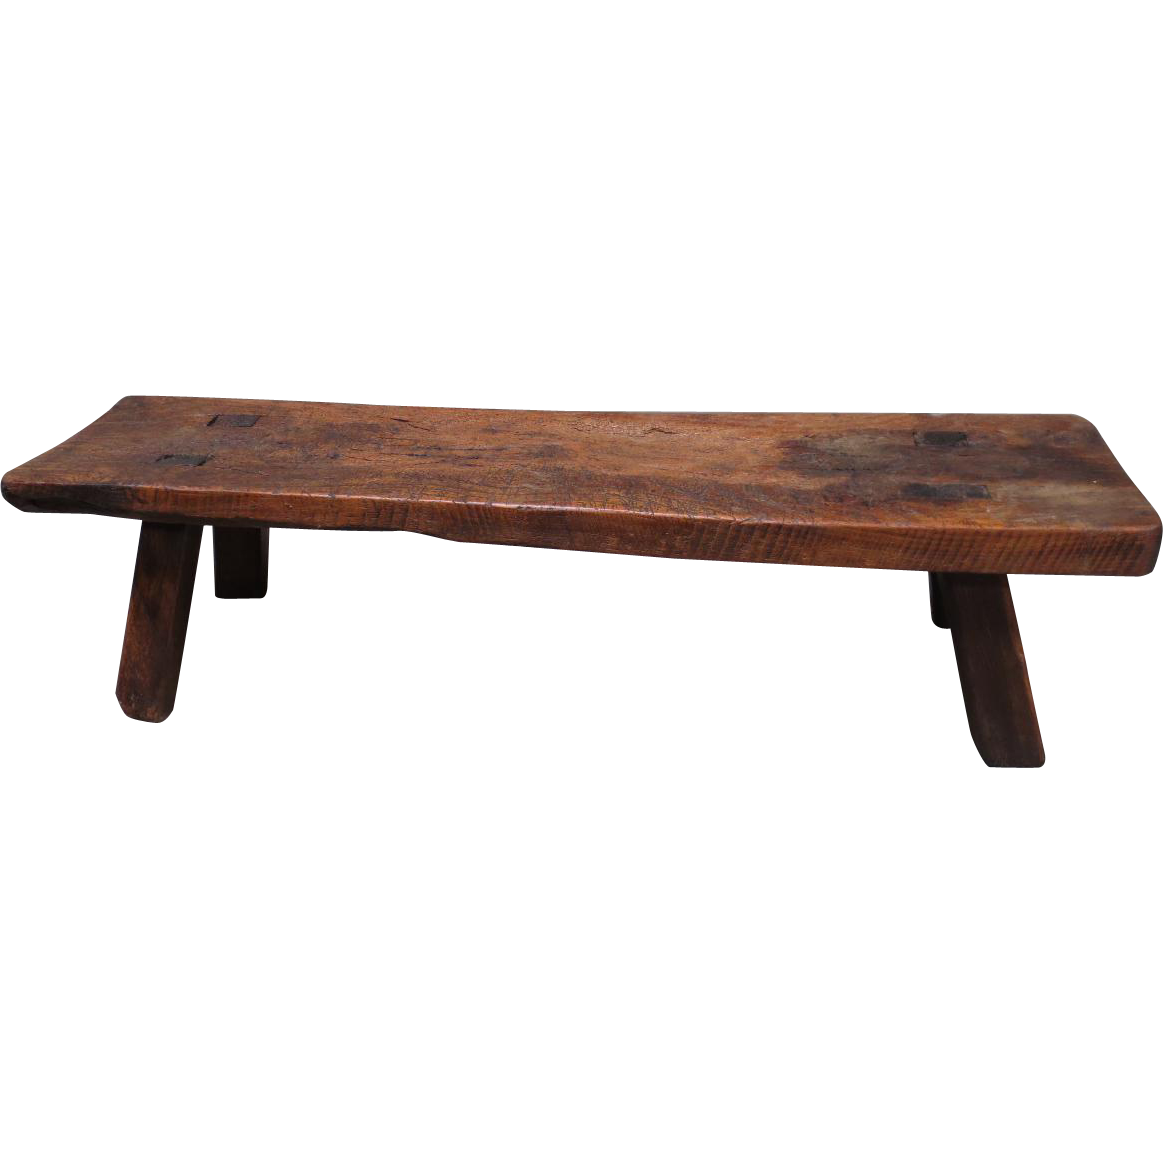 Rustic Table.Small Foyer Table With Drawer. 100 Cast Iron ...